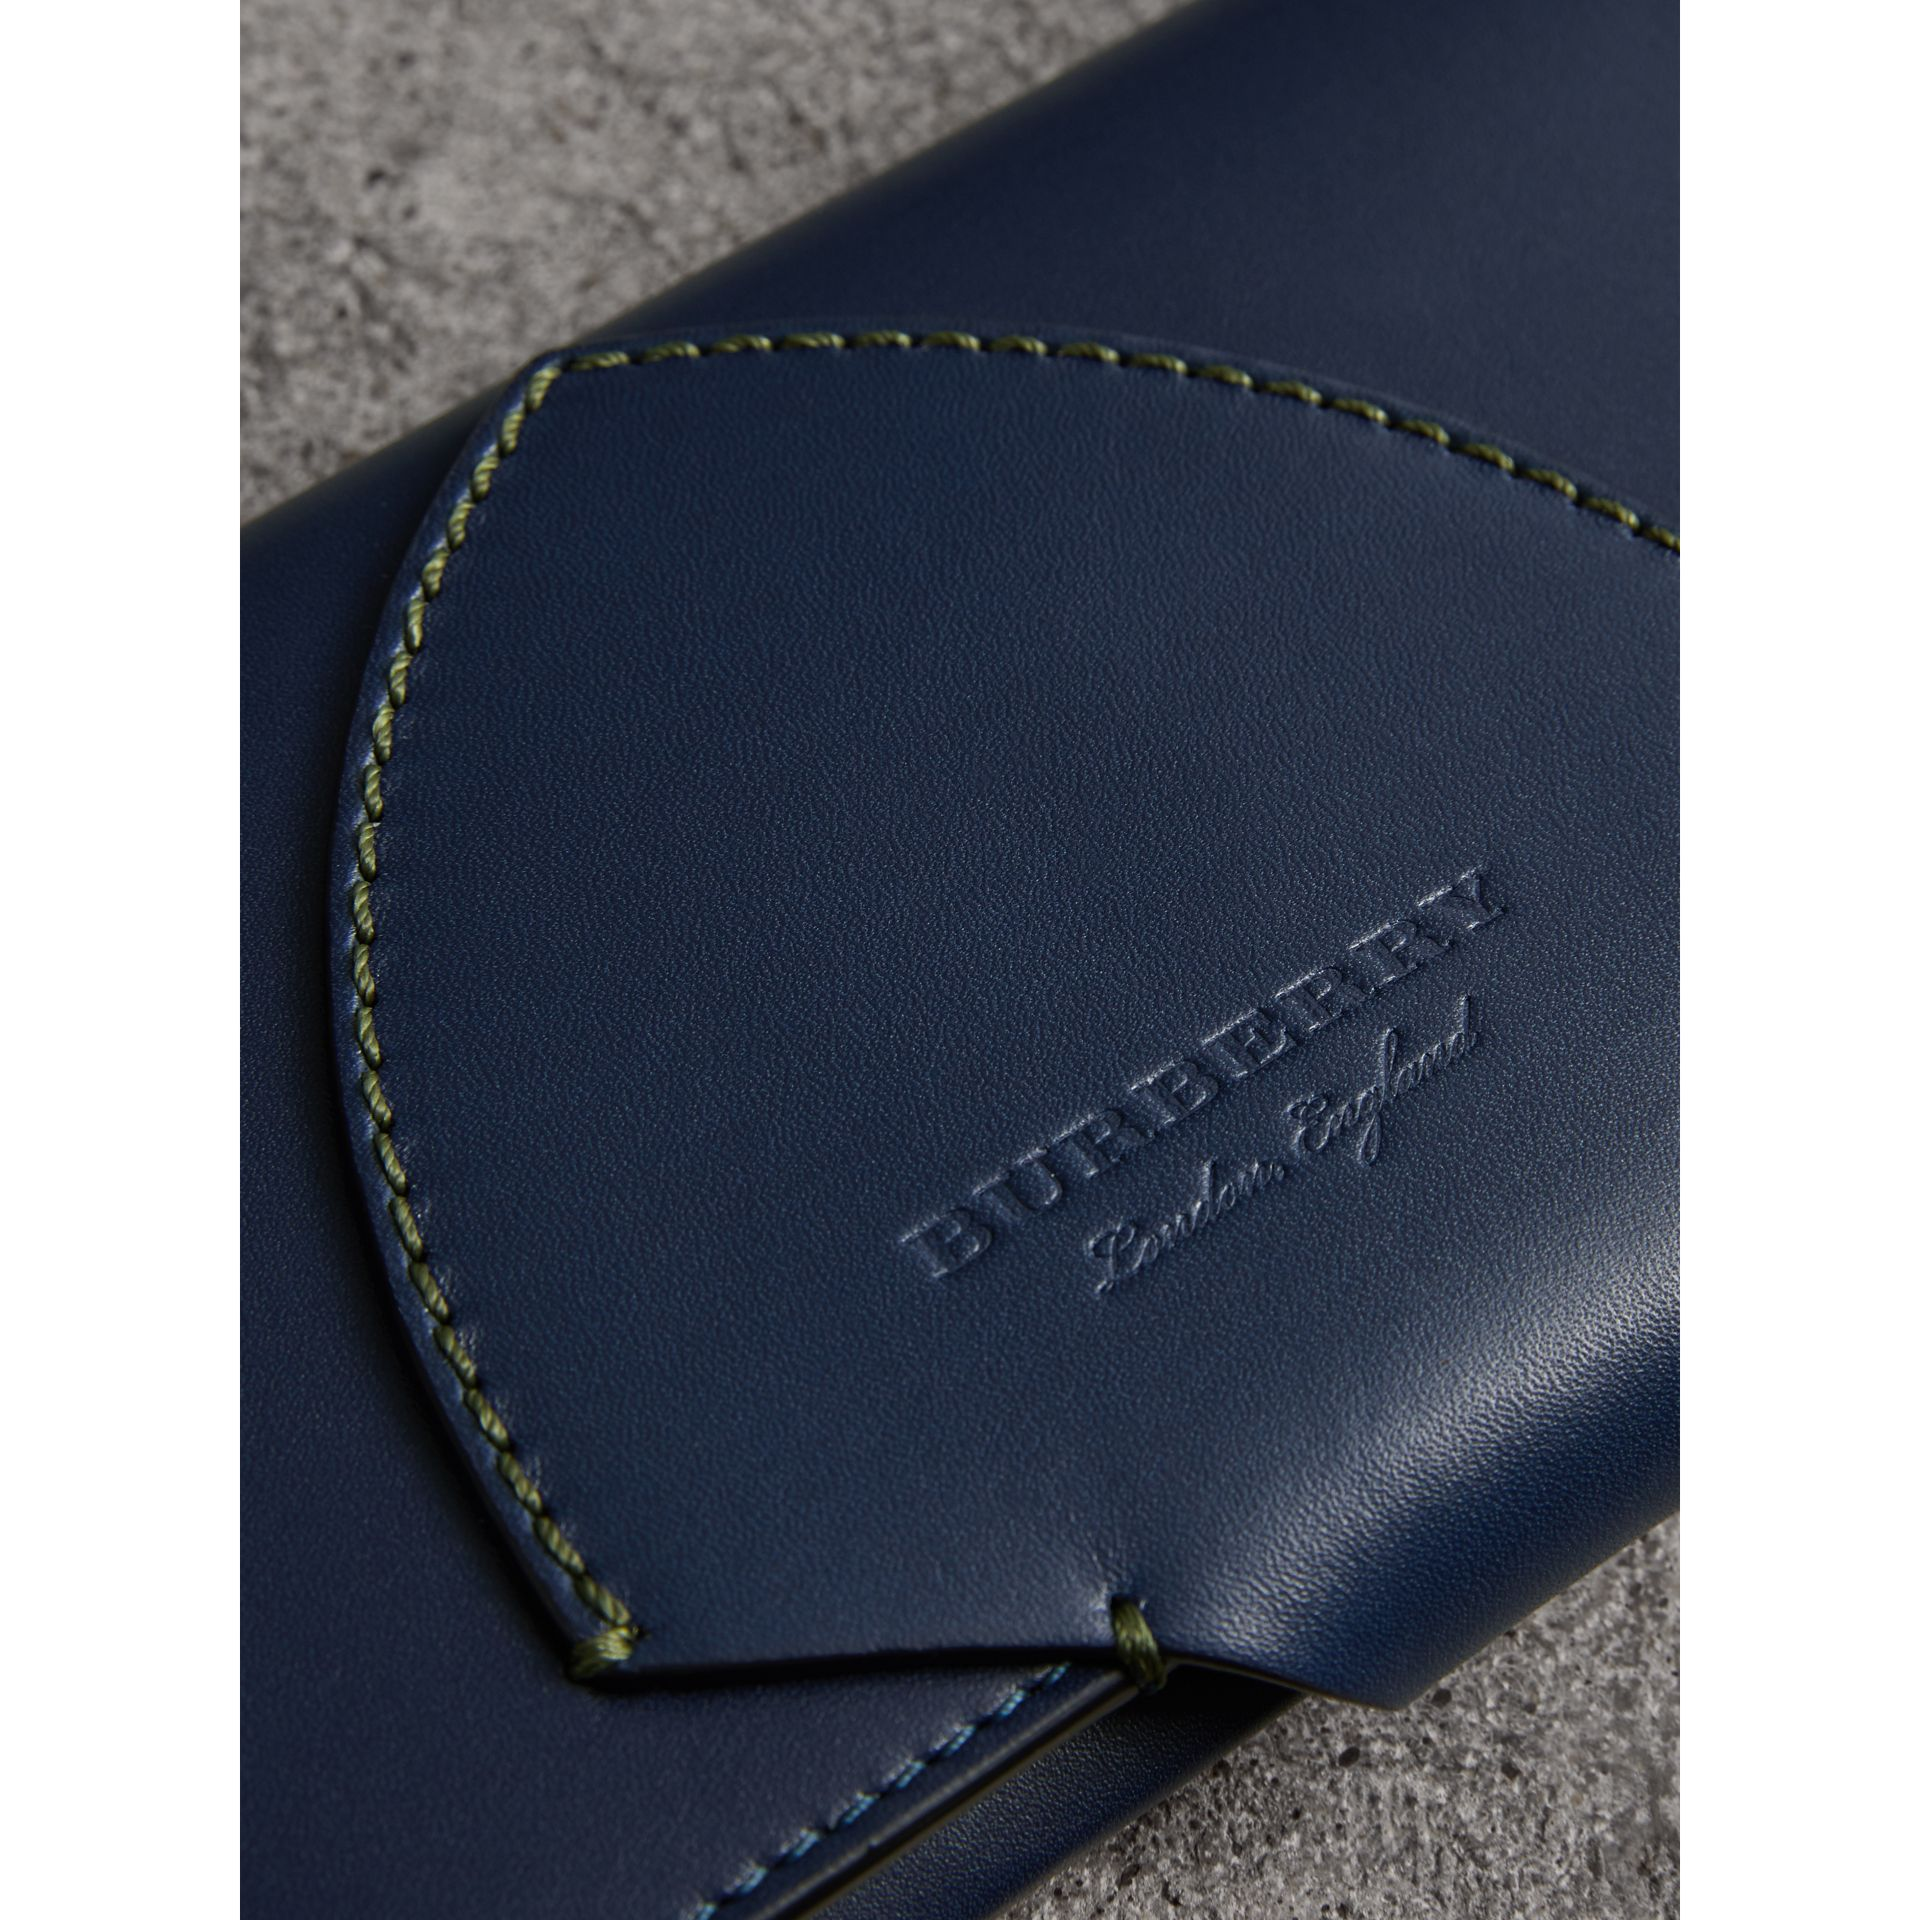 Equestrian Shield Two-tone Leather Continental Wallet in Mid Indigo - Women | Burberry United States - gallery image 1